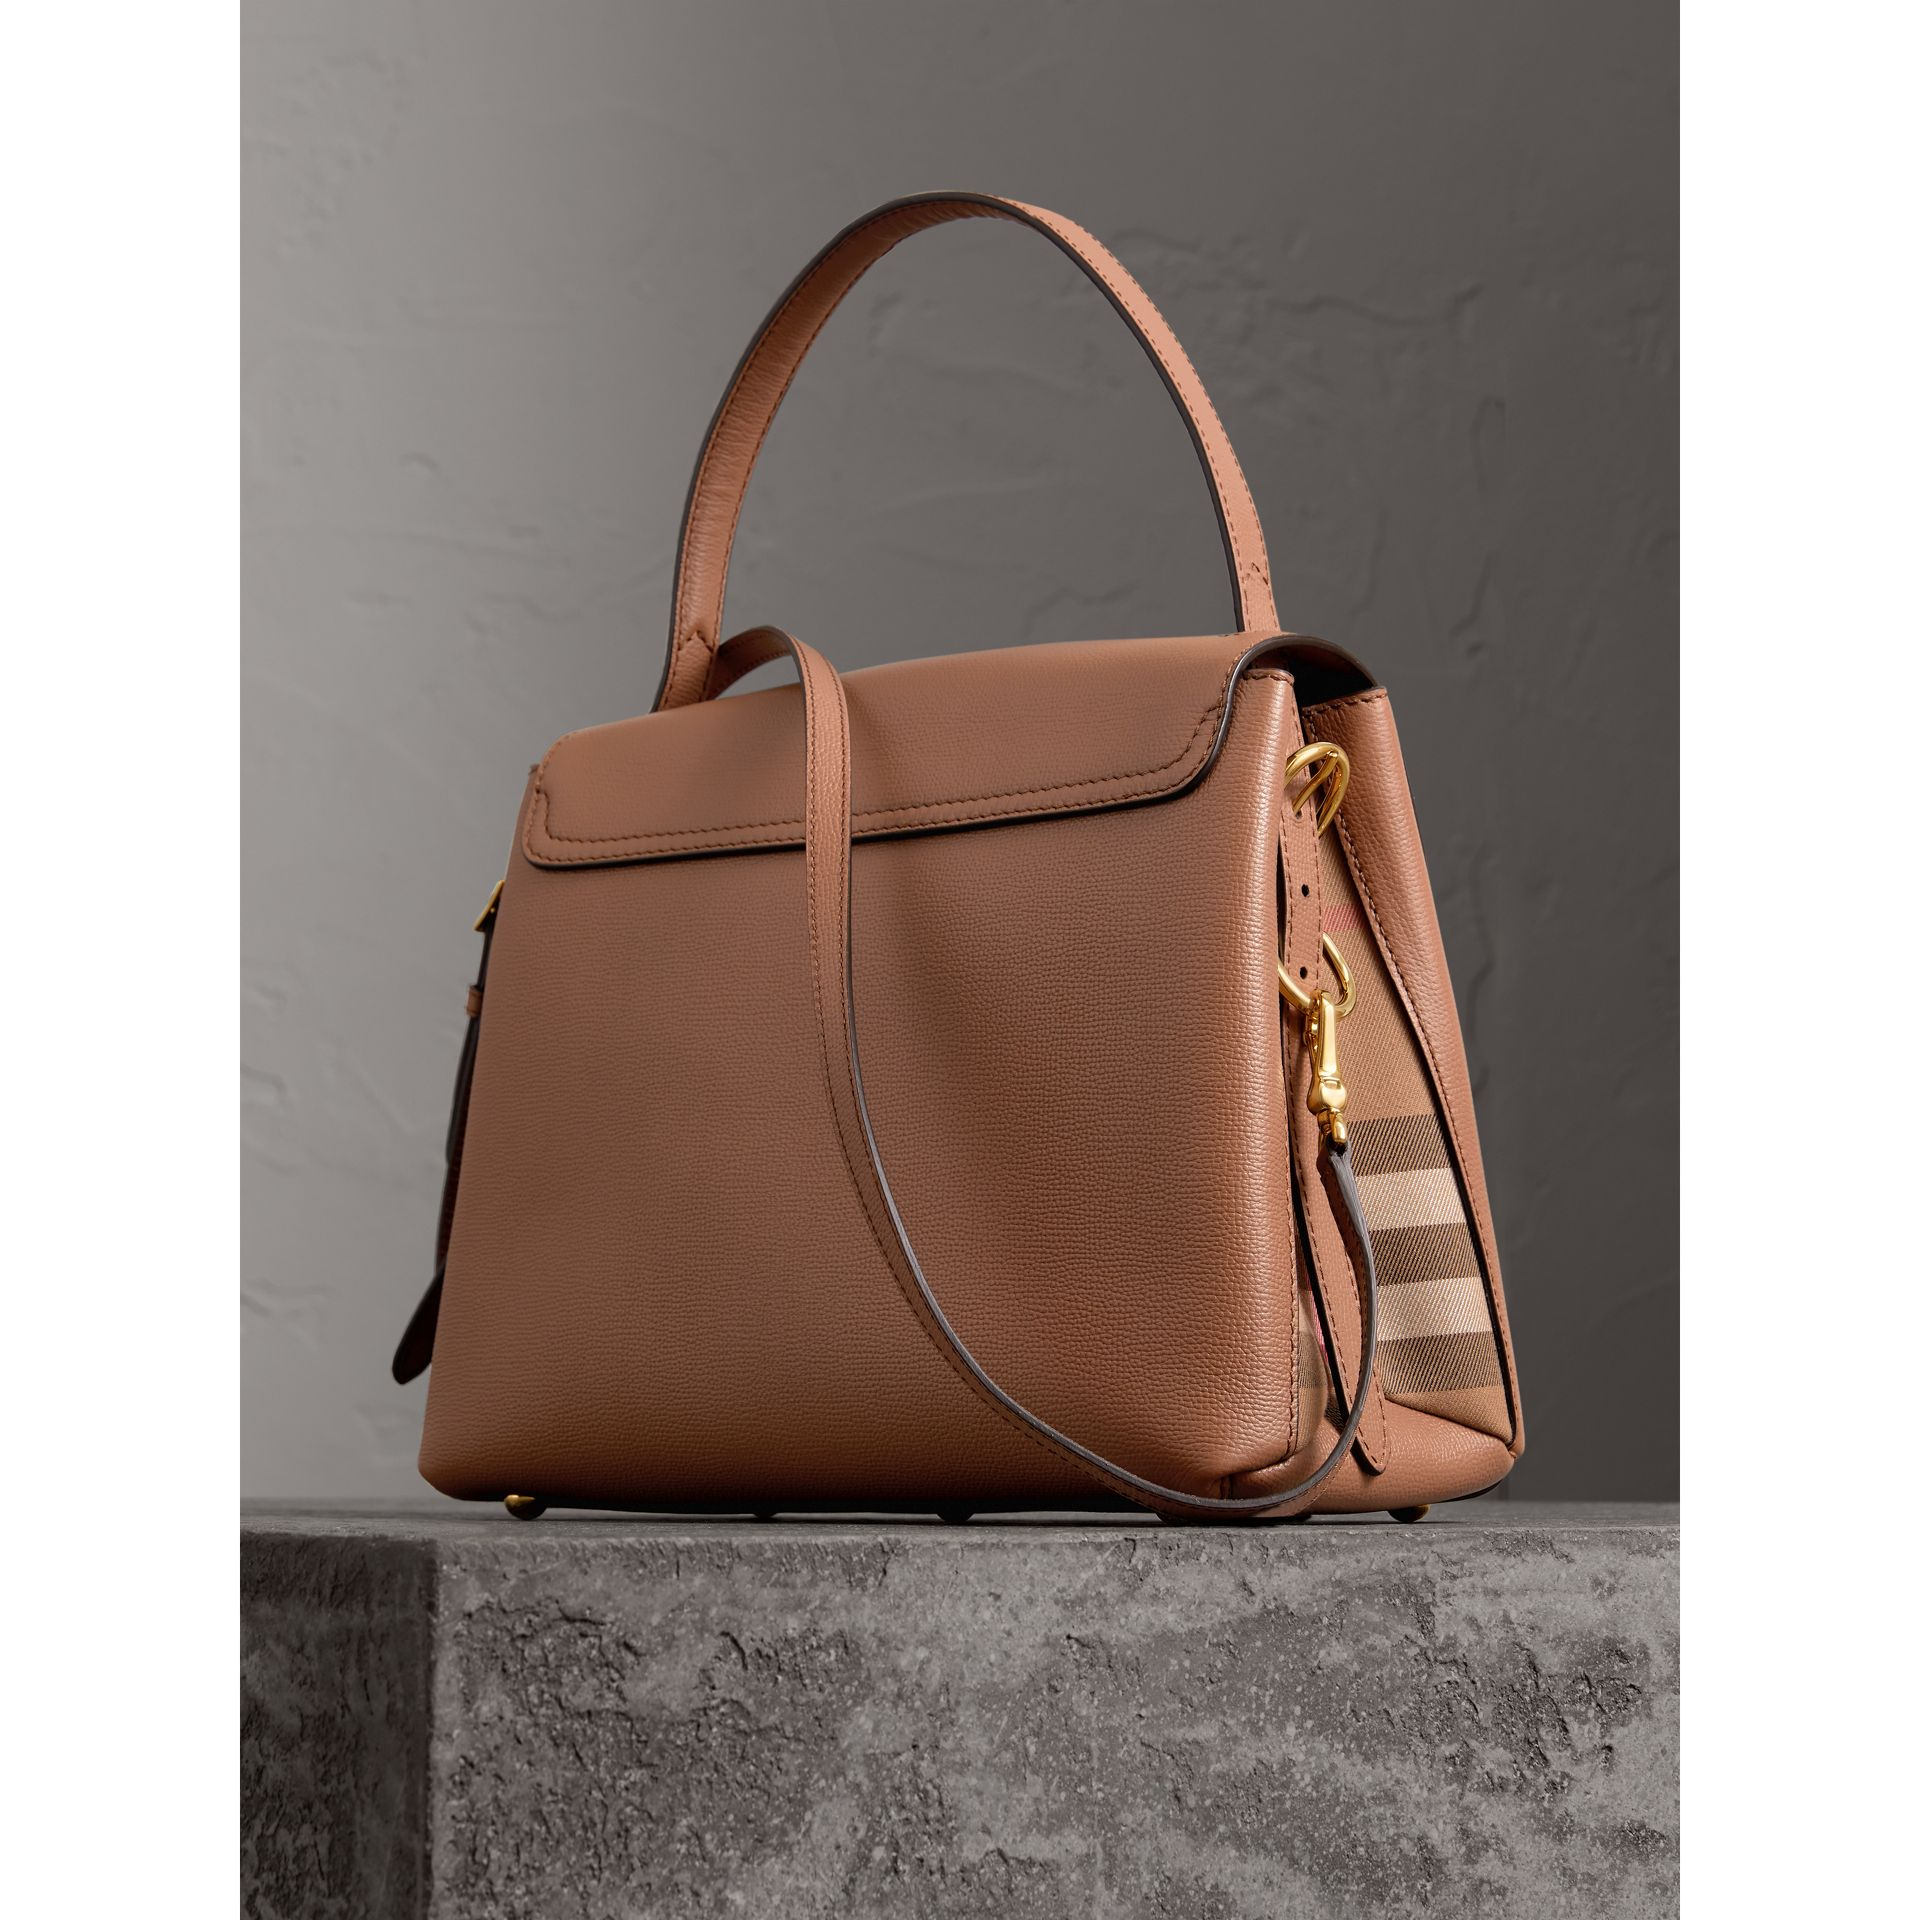 Medium Grainy Leather and House Check Tote Bag in Dark Sand - Women | Burberry - gallery image 4